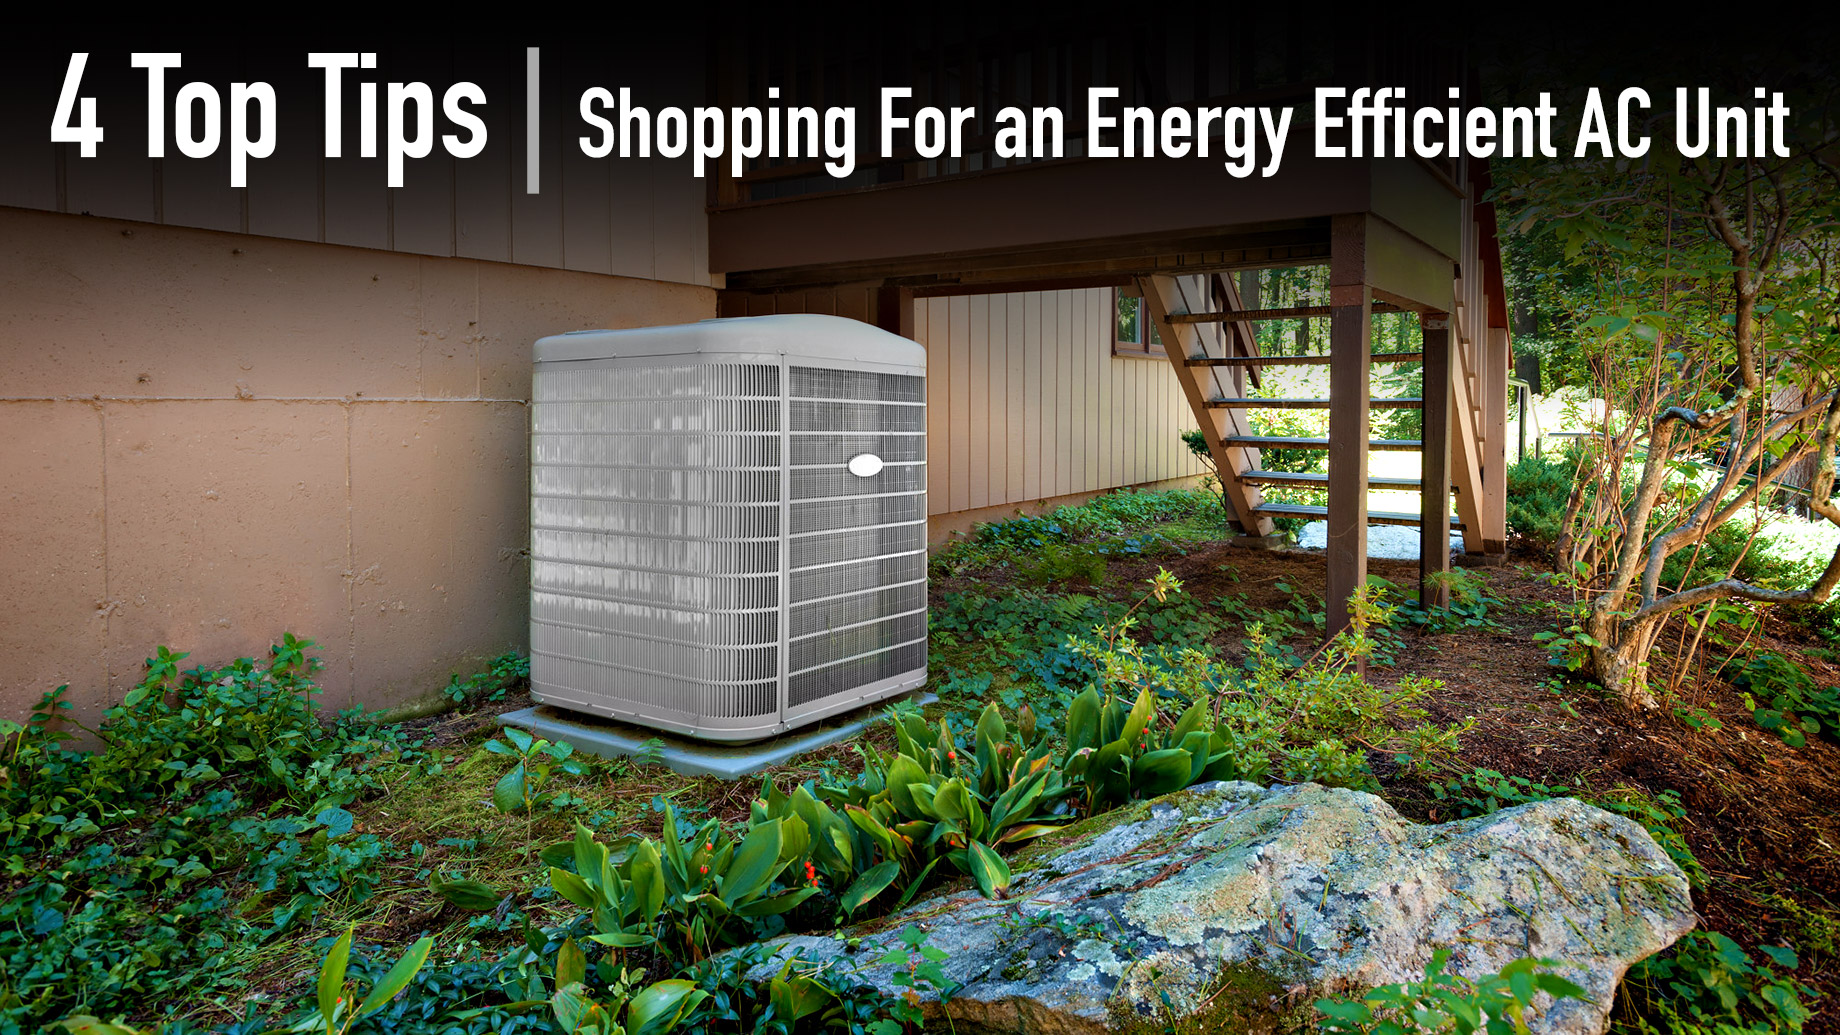 4 Top Tips on Shopping For an Energy Efficient AC Unit